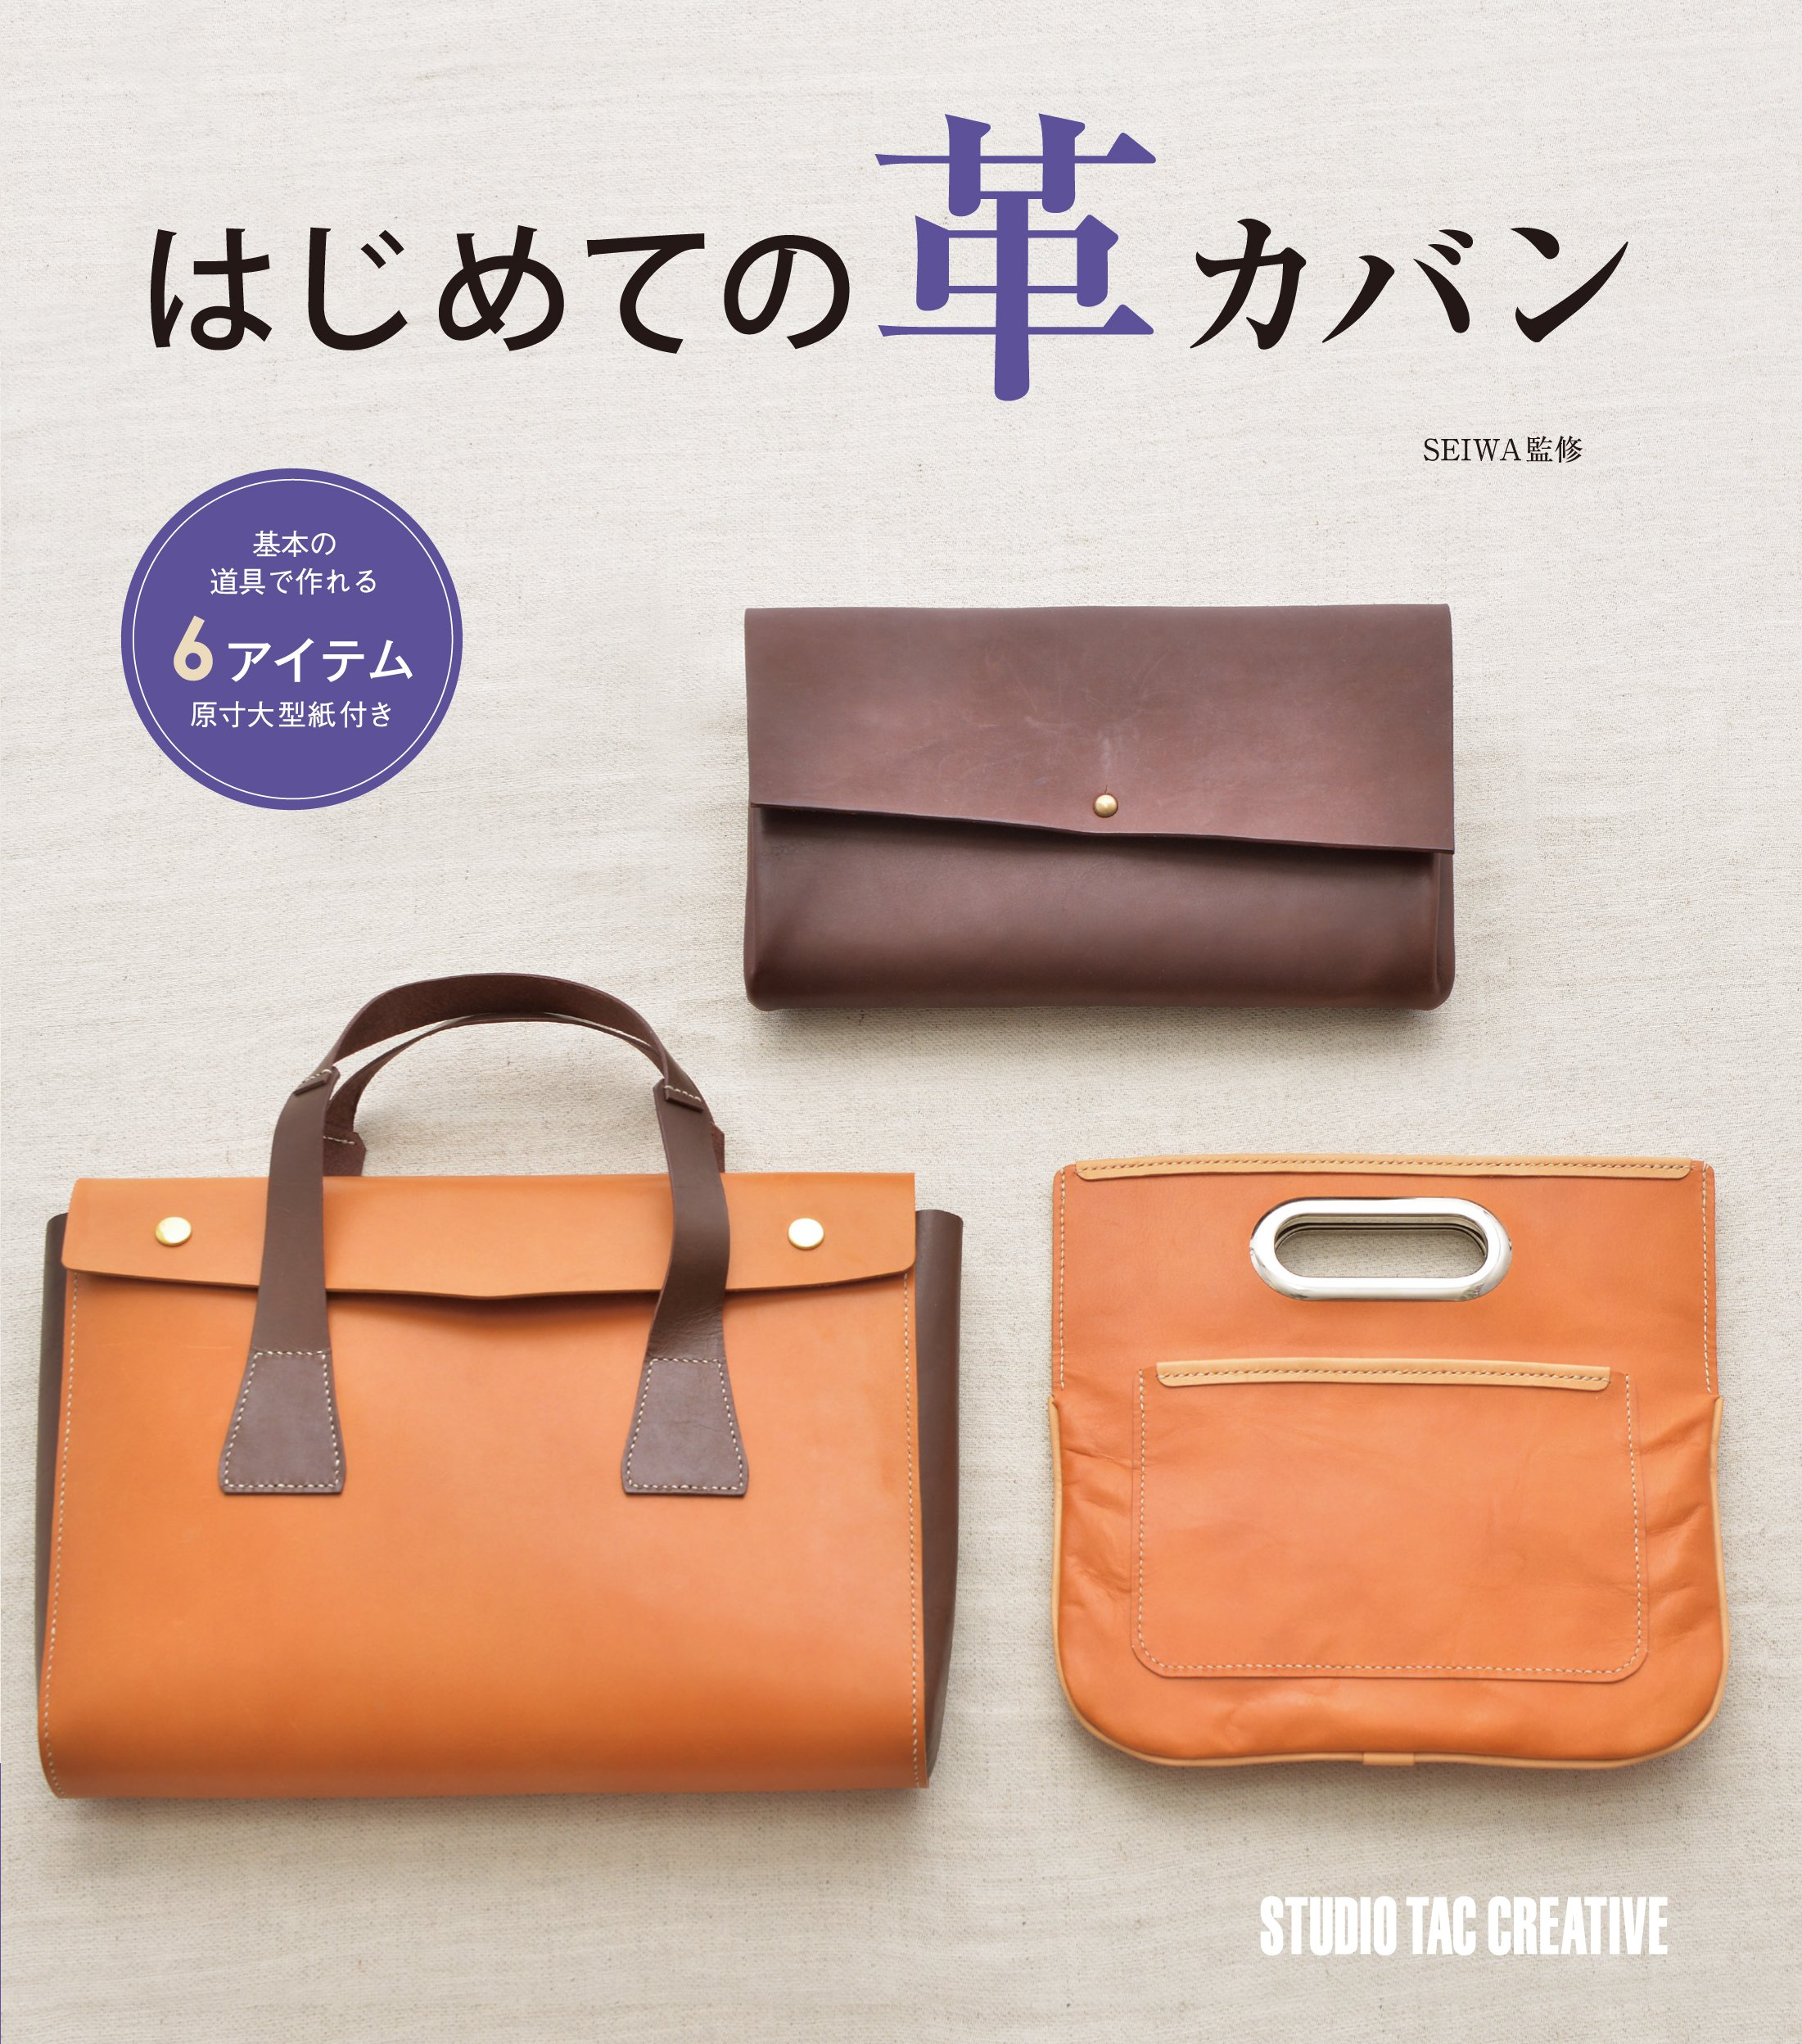 The first time of the leather bag